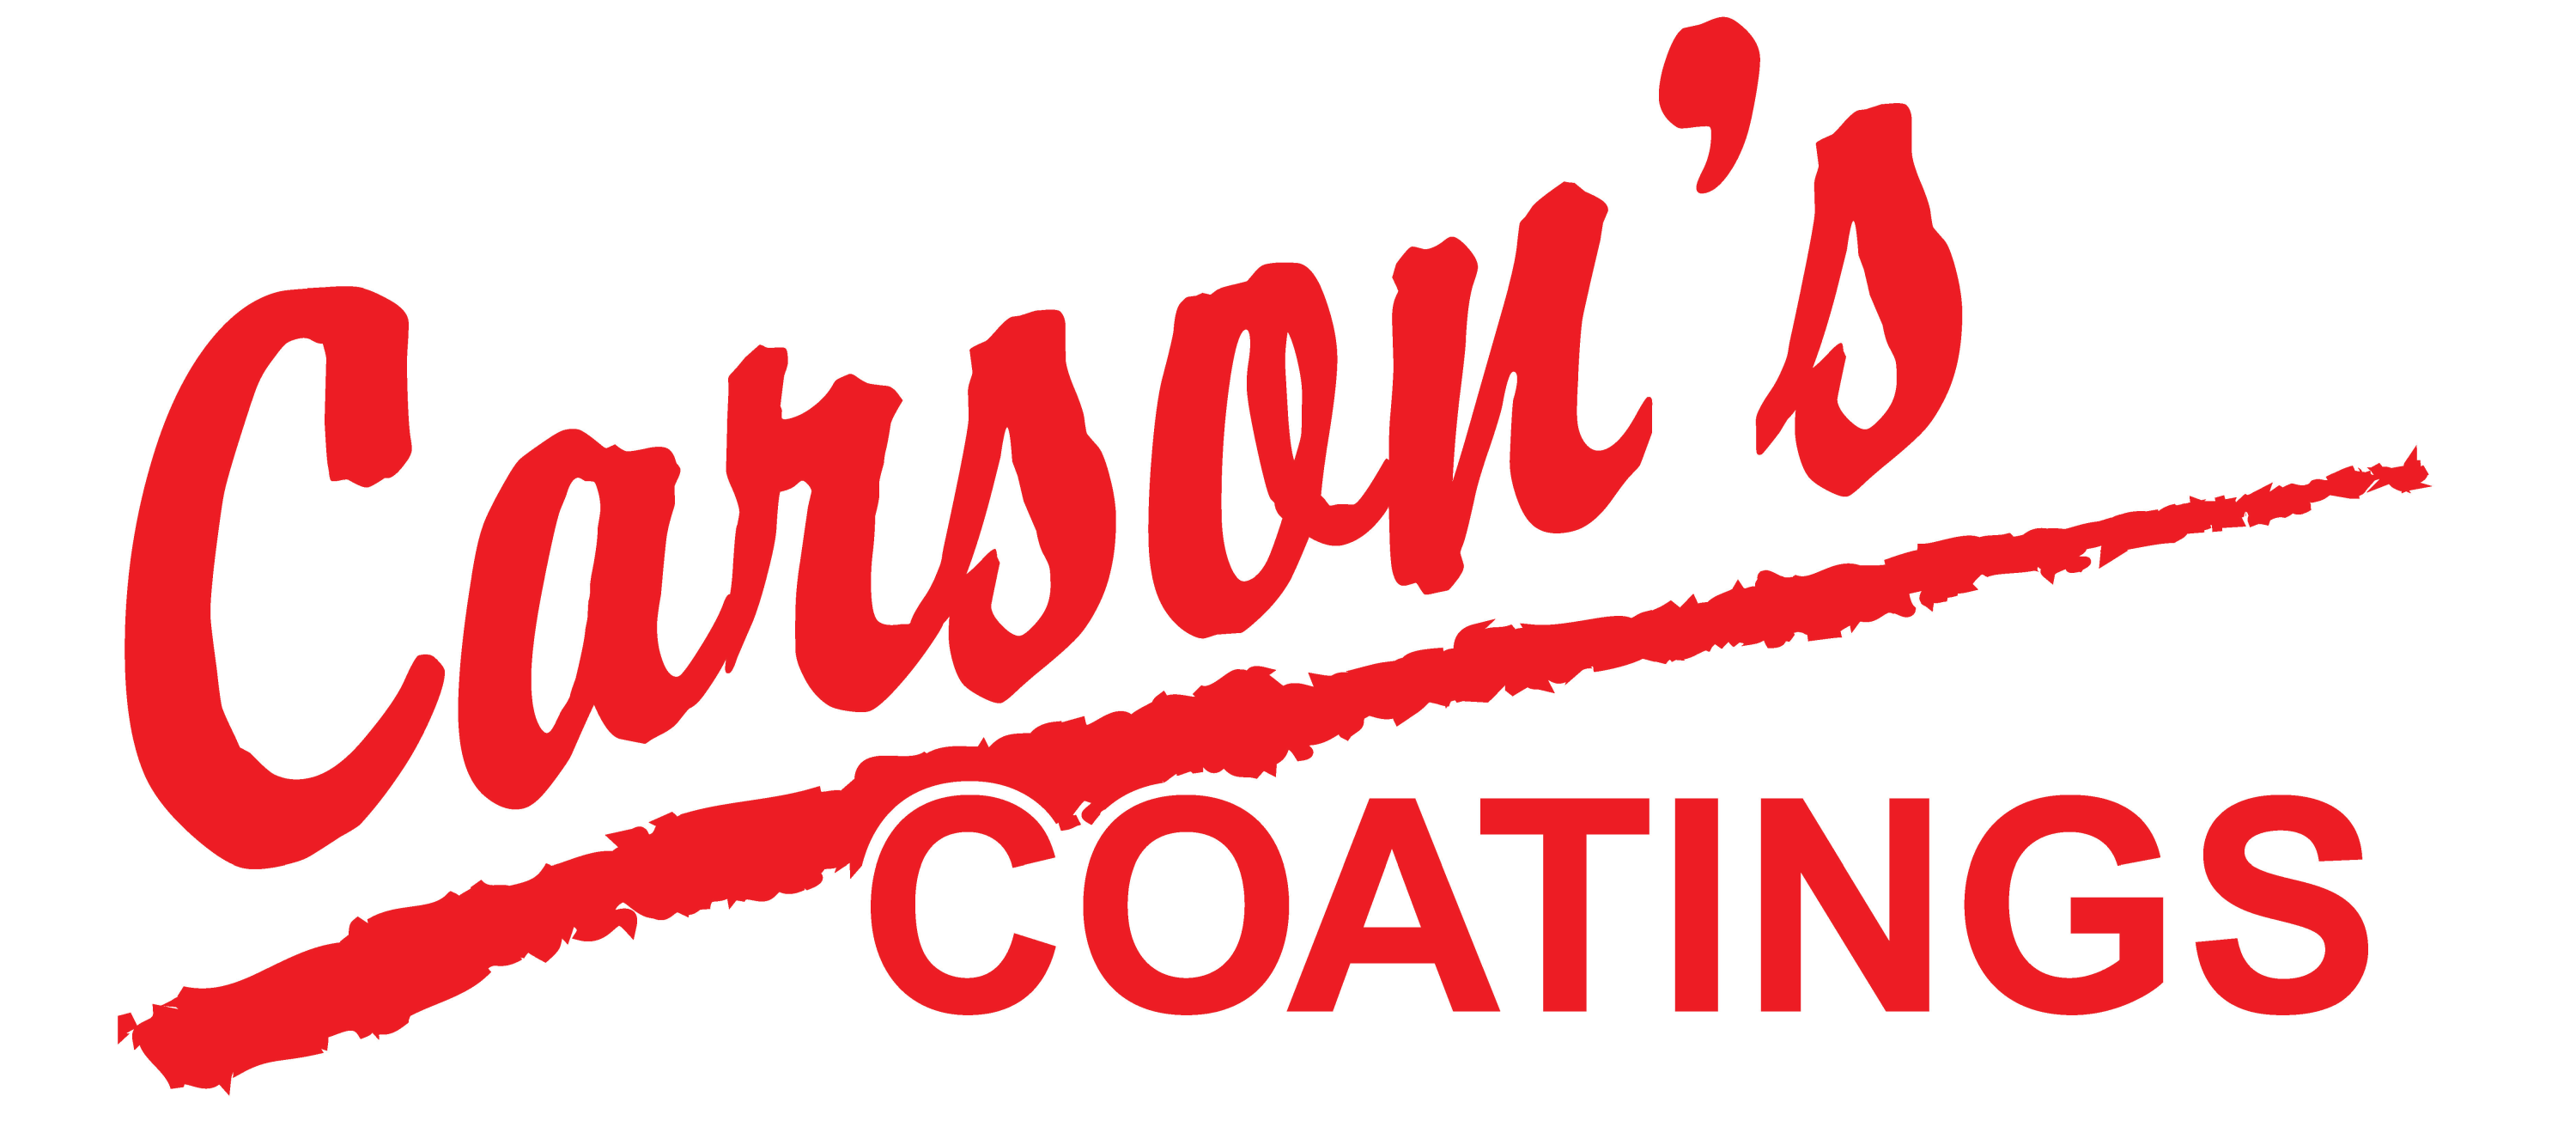 Carson's Coatings logo (red writing)